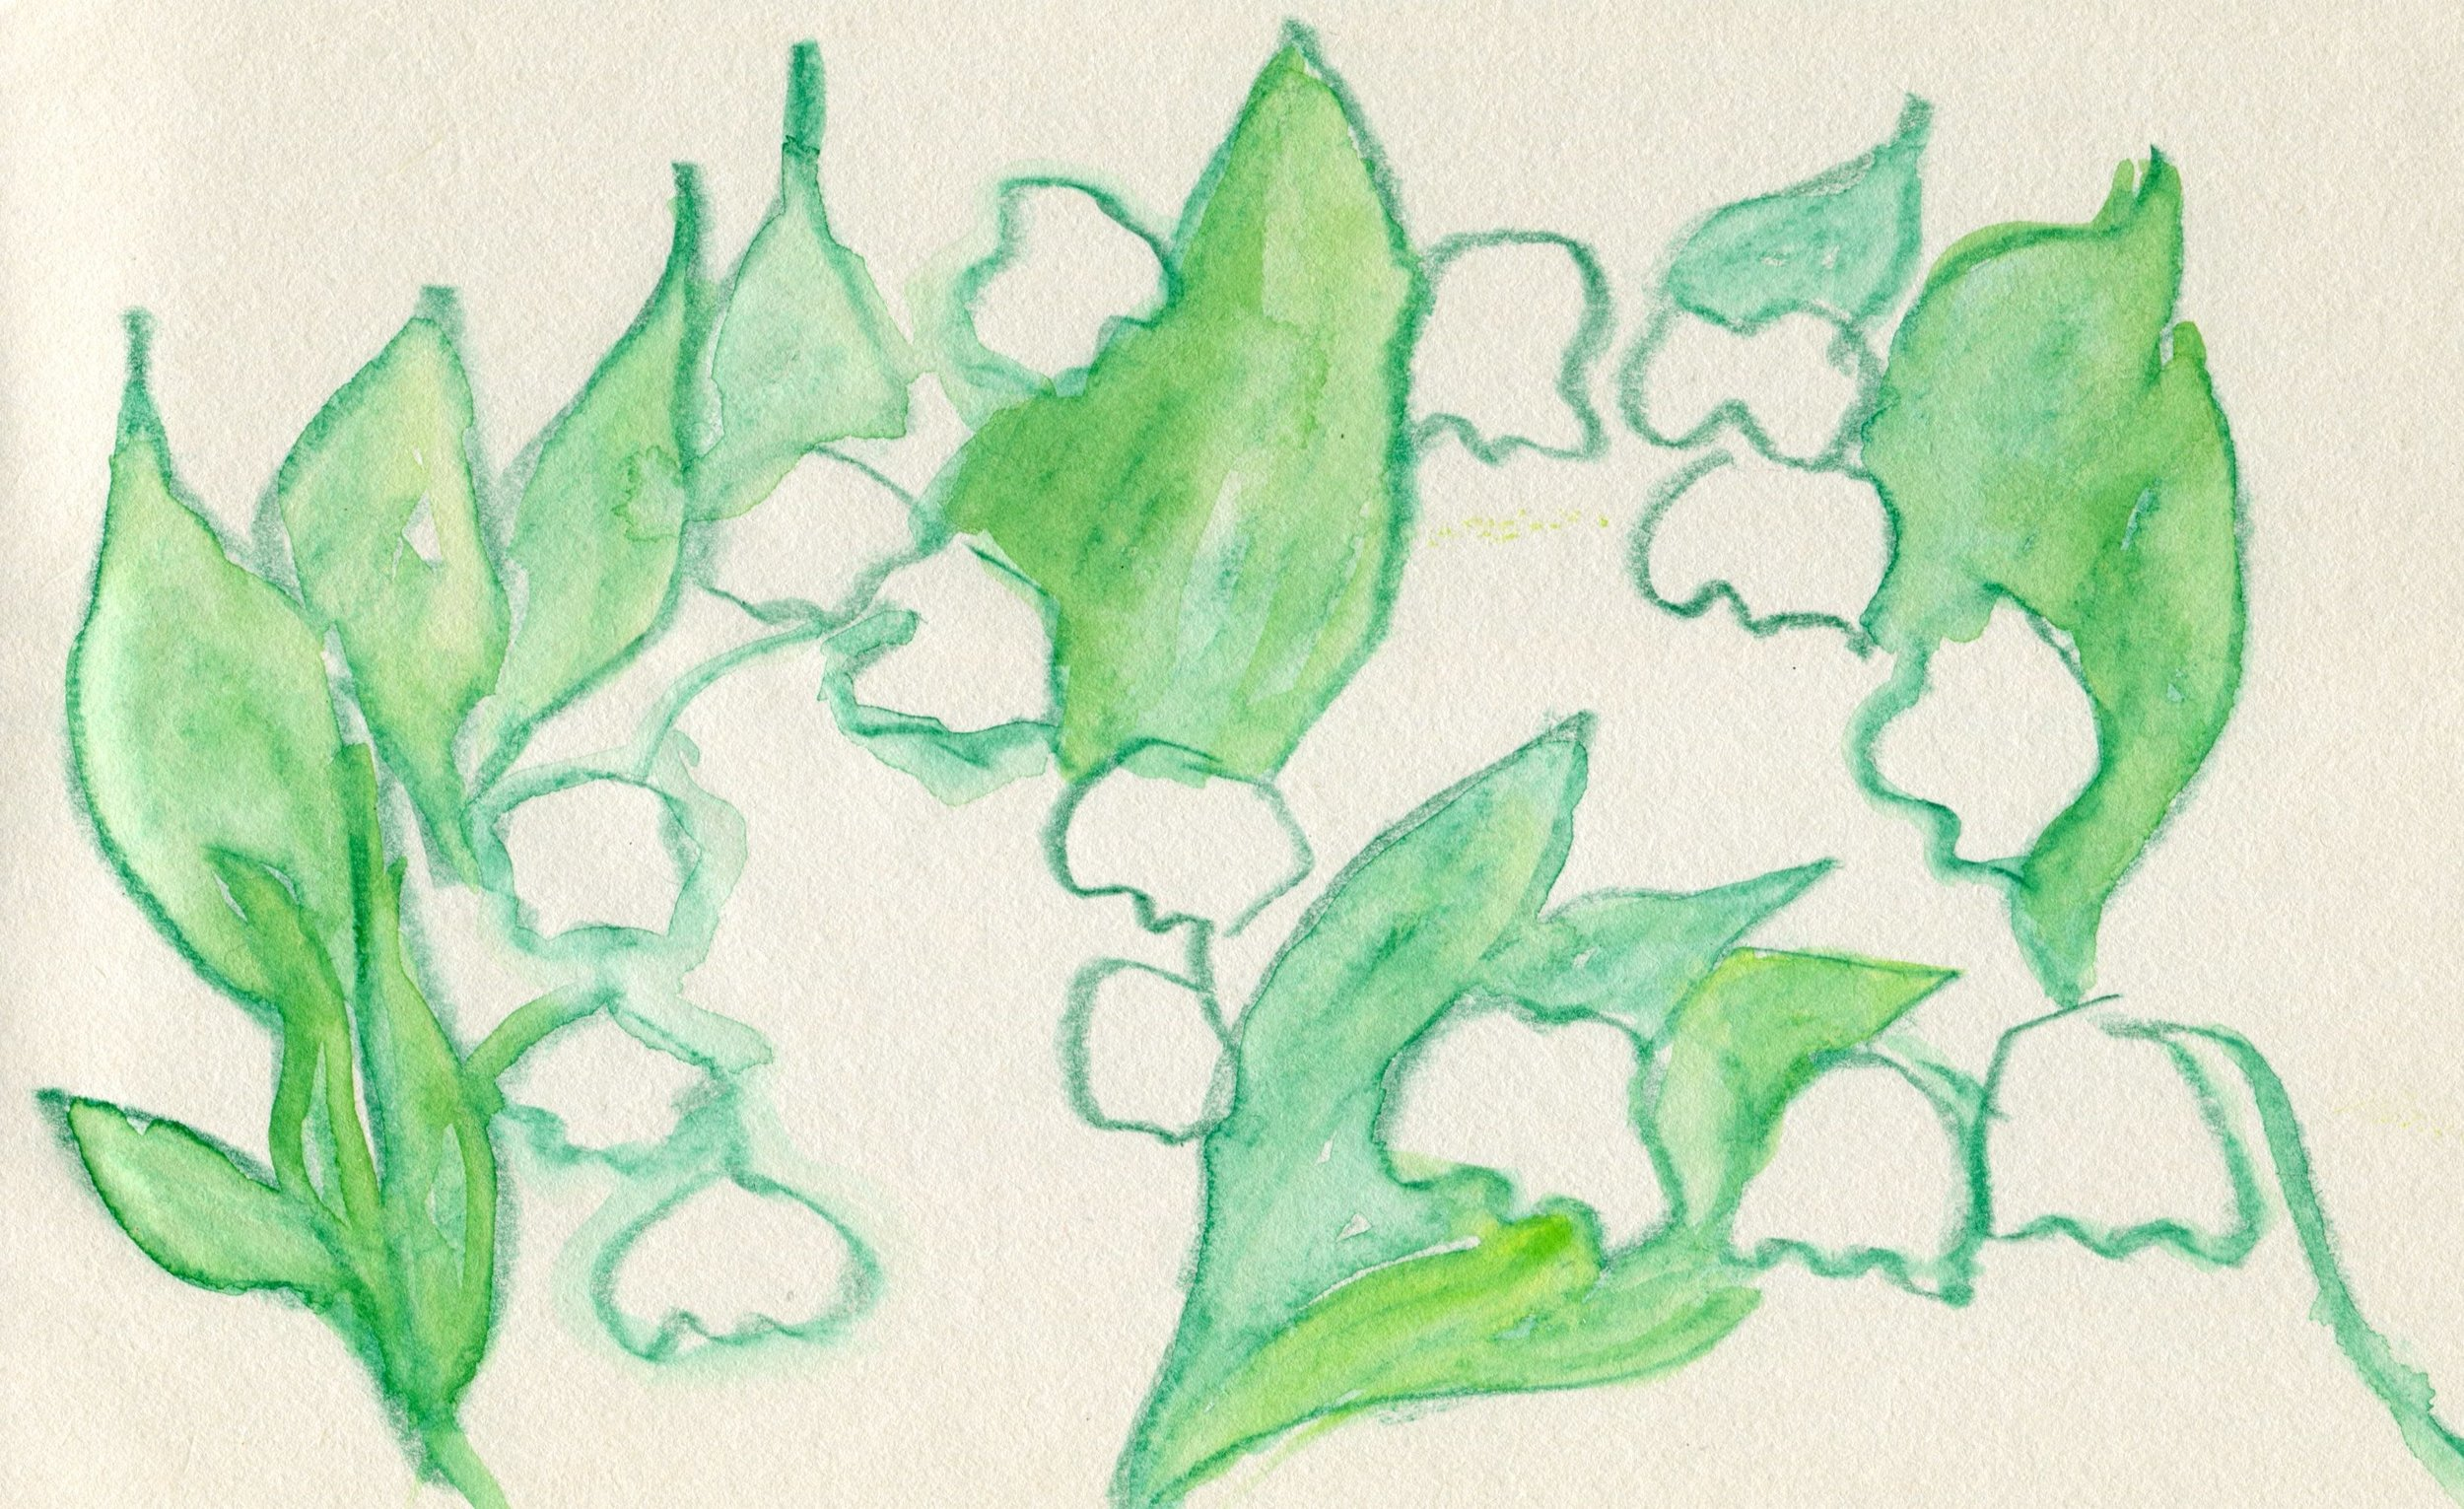 Lilies of the field image.jpg